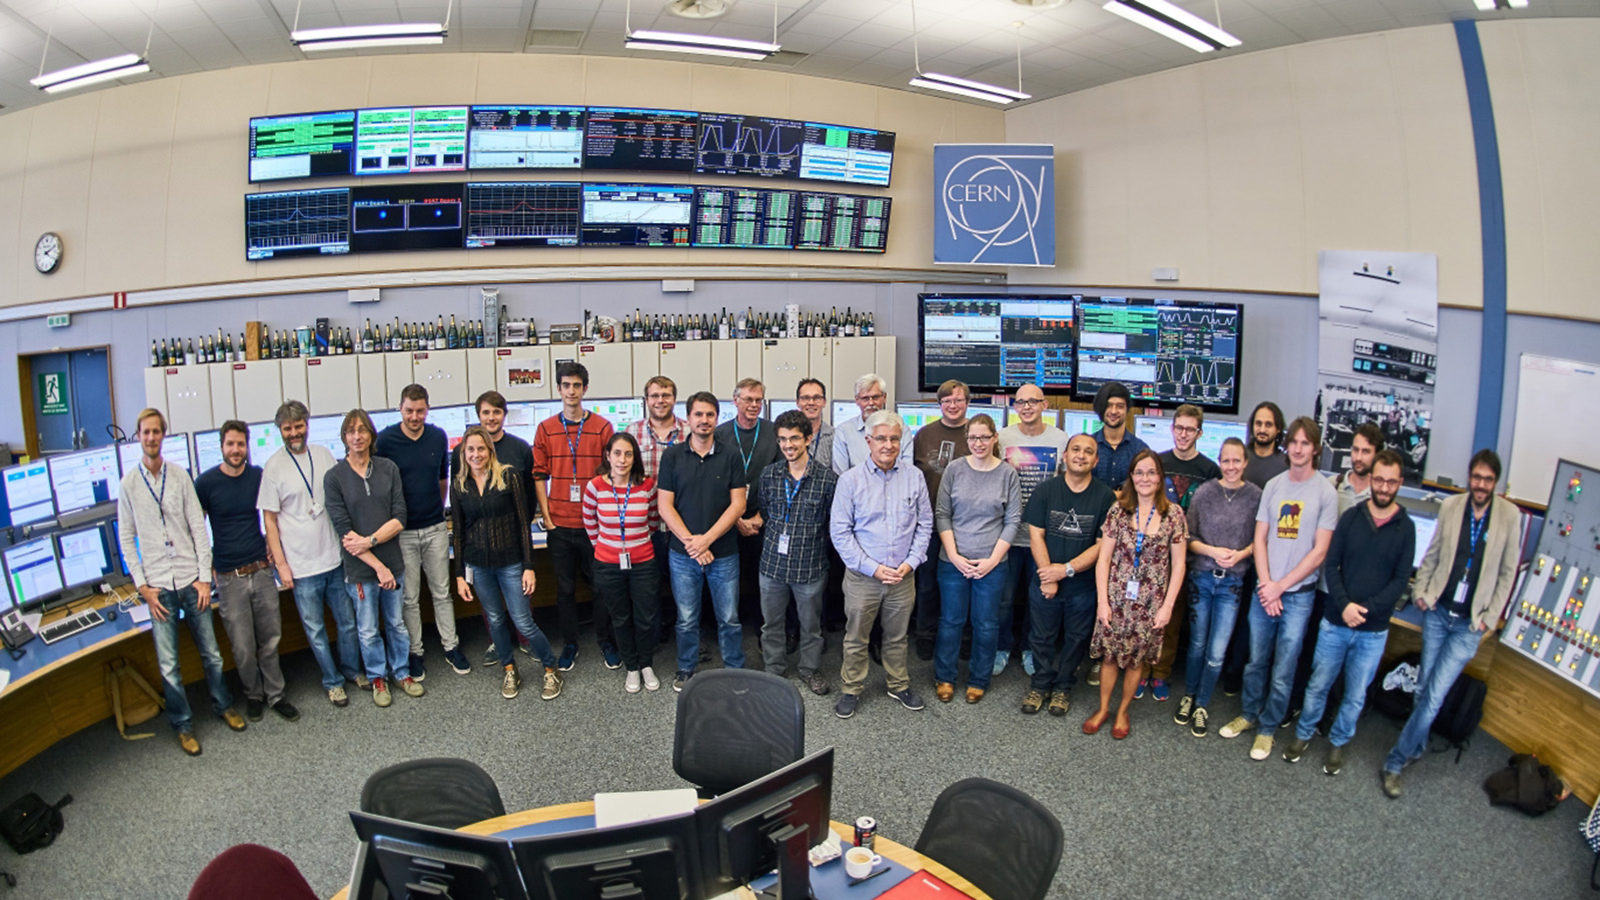 Group photo of about 30 people in the CERN Control Centre